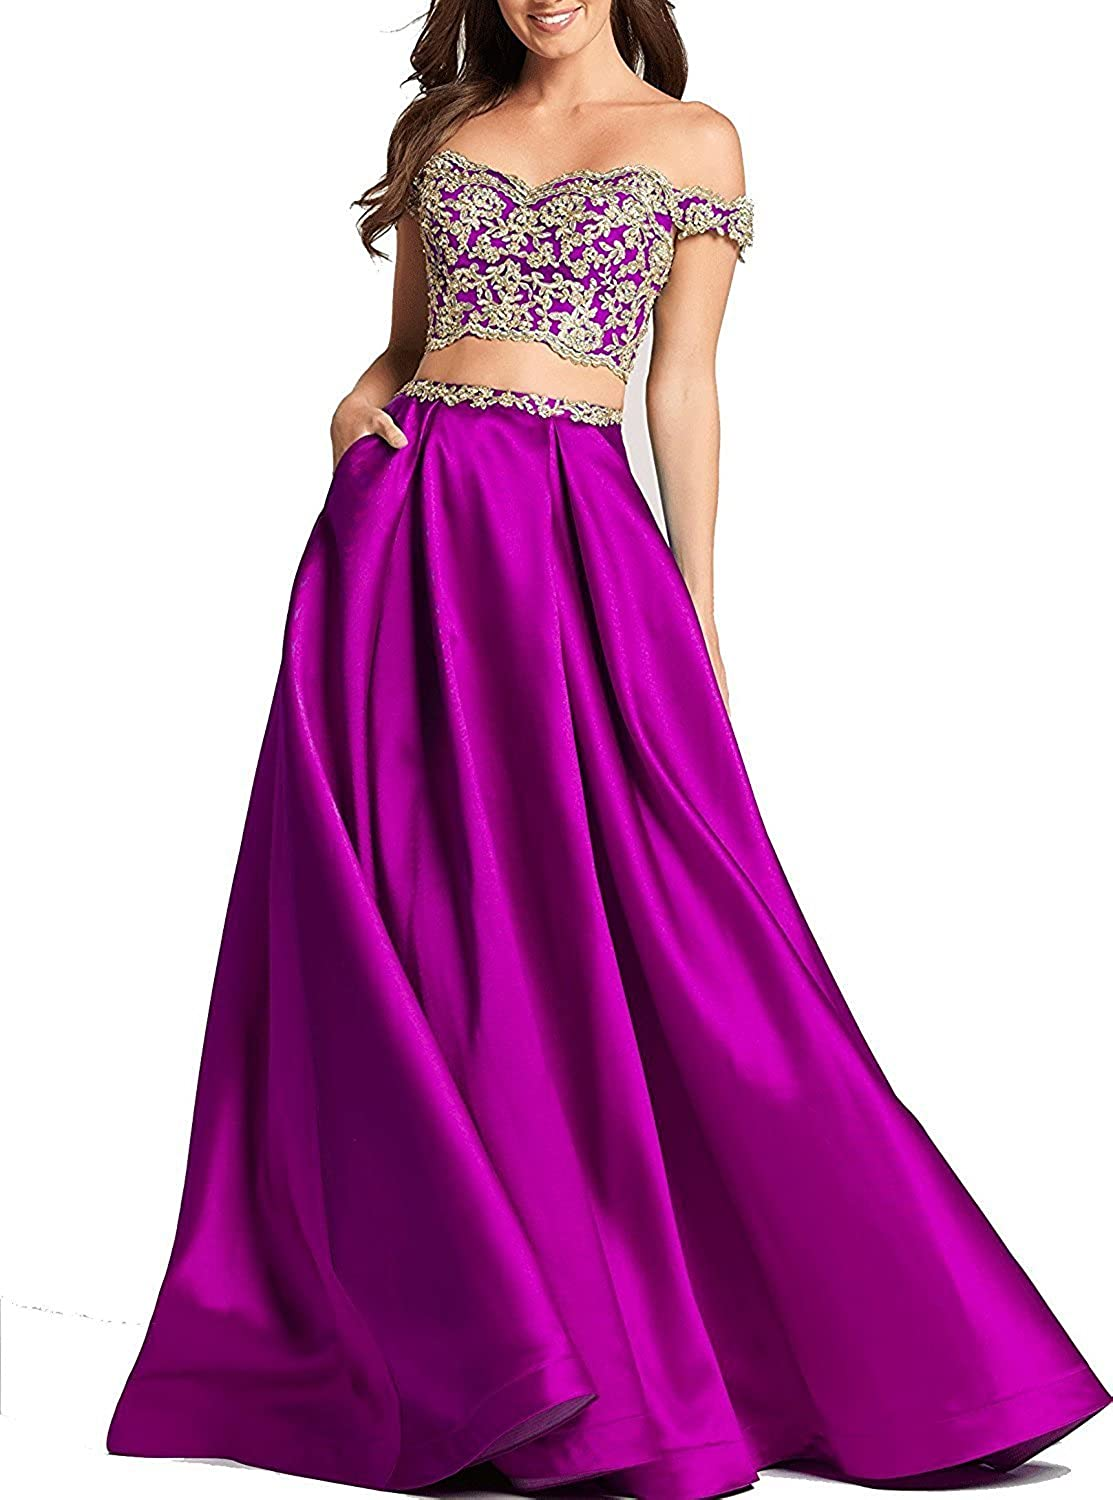 Awishwill Two Pieces Off Shoulder Prom Evening Dresses Cap Sleeve V Neck Formal Party Gown